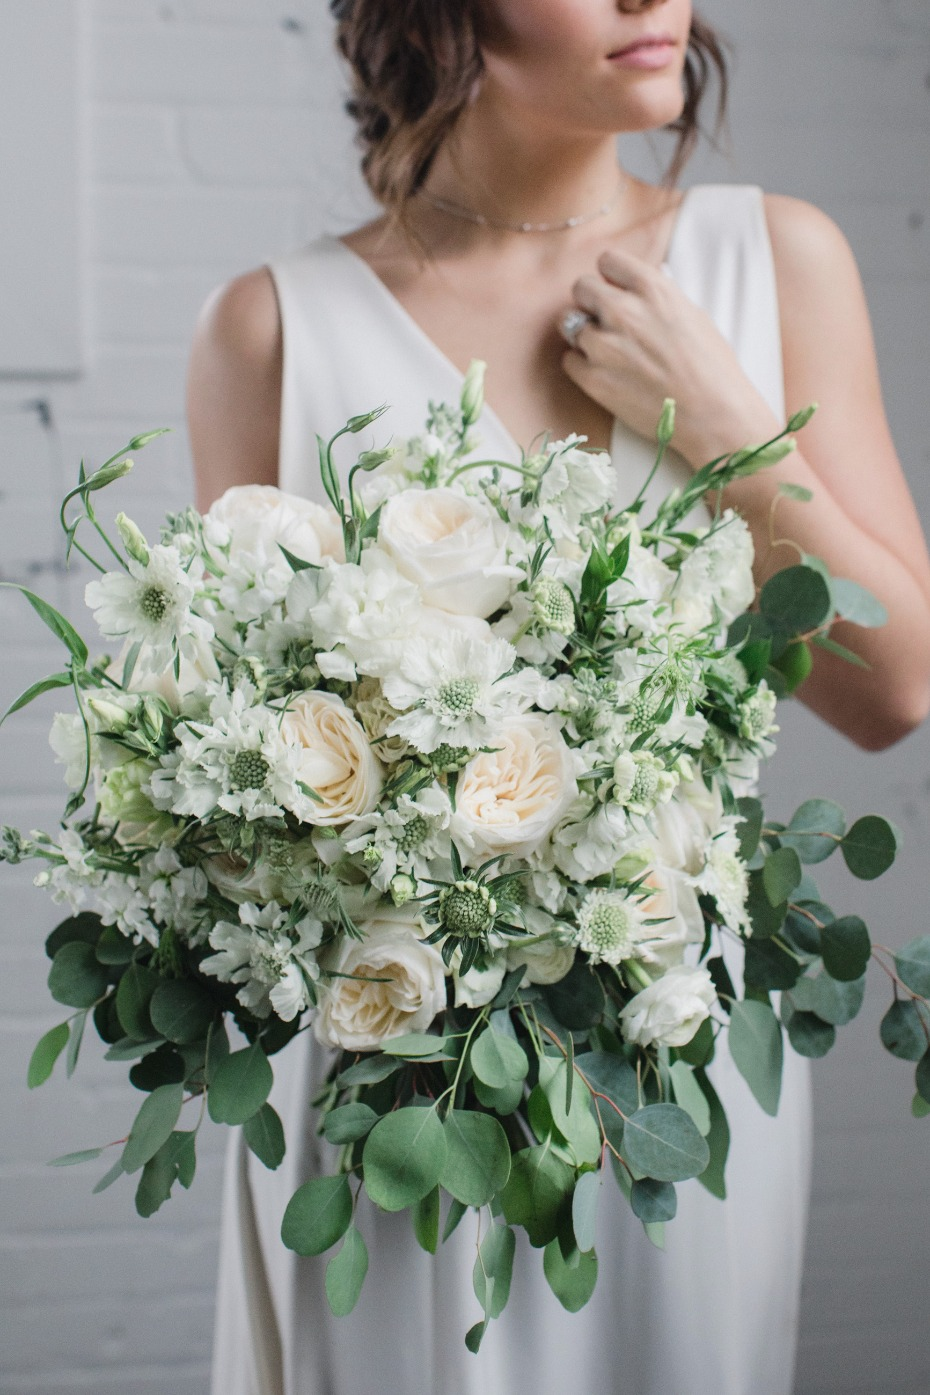 Gorgeous bouquet from Fifty Flowers